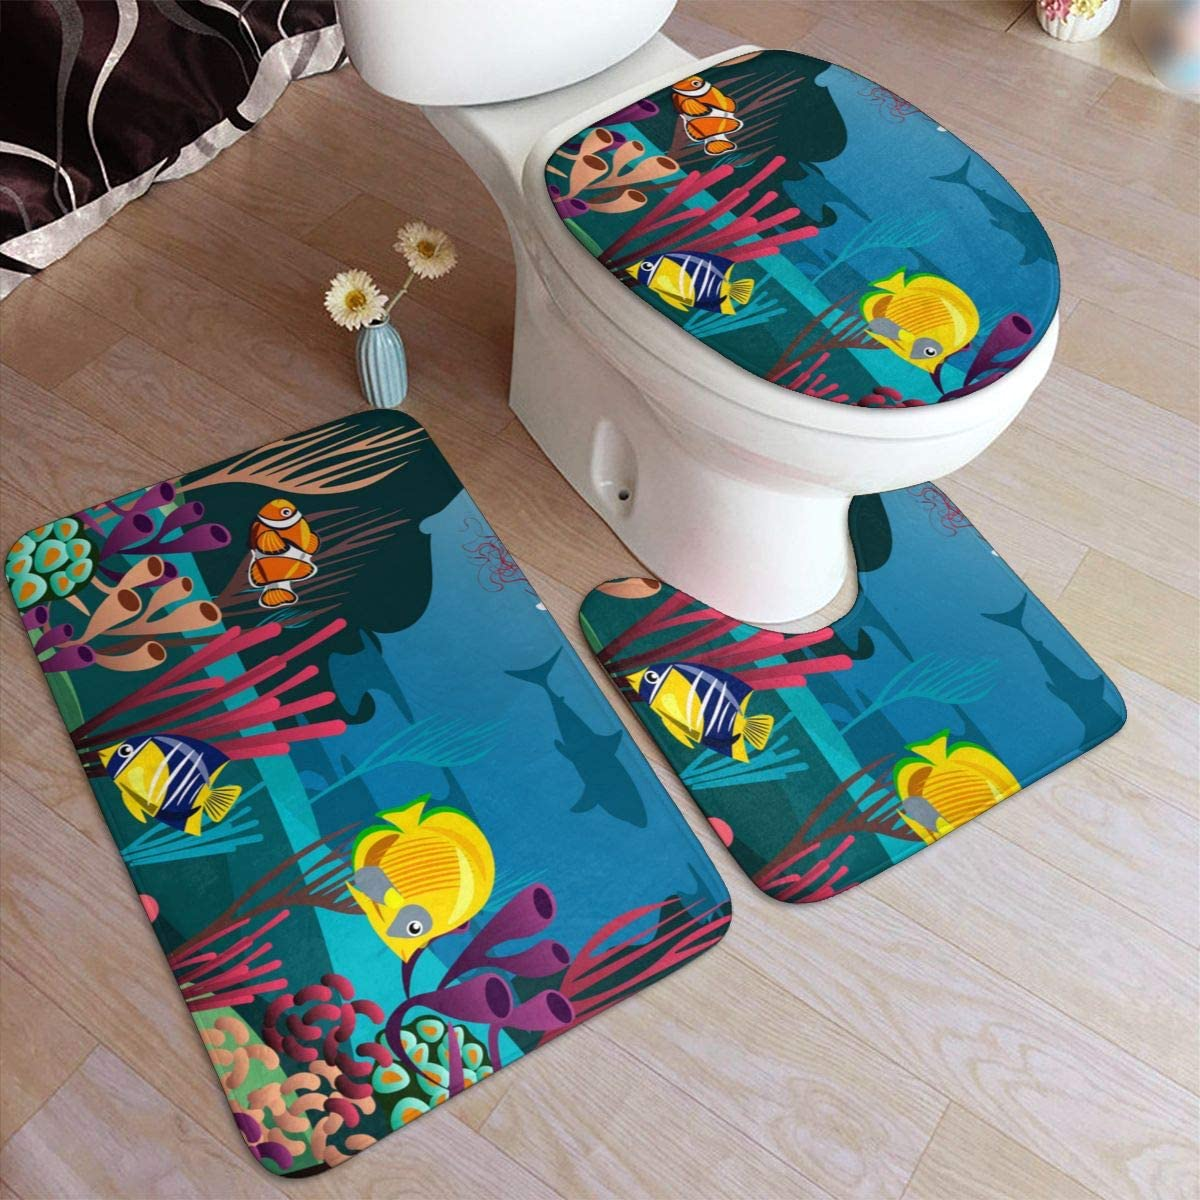 Bath Mat Sets, Undersea World with Fish,Contour Rug U-Shaped Toilet Lid Cover,Non Slip,Machine Washable,3-Piece Rug Set Easier to Dry for Bathroom